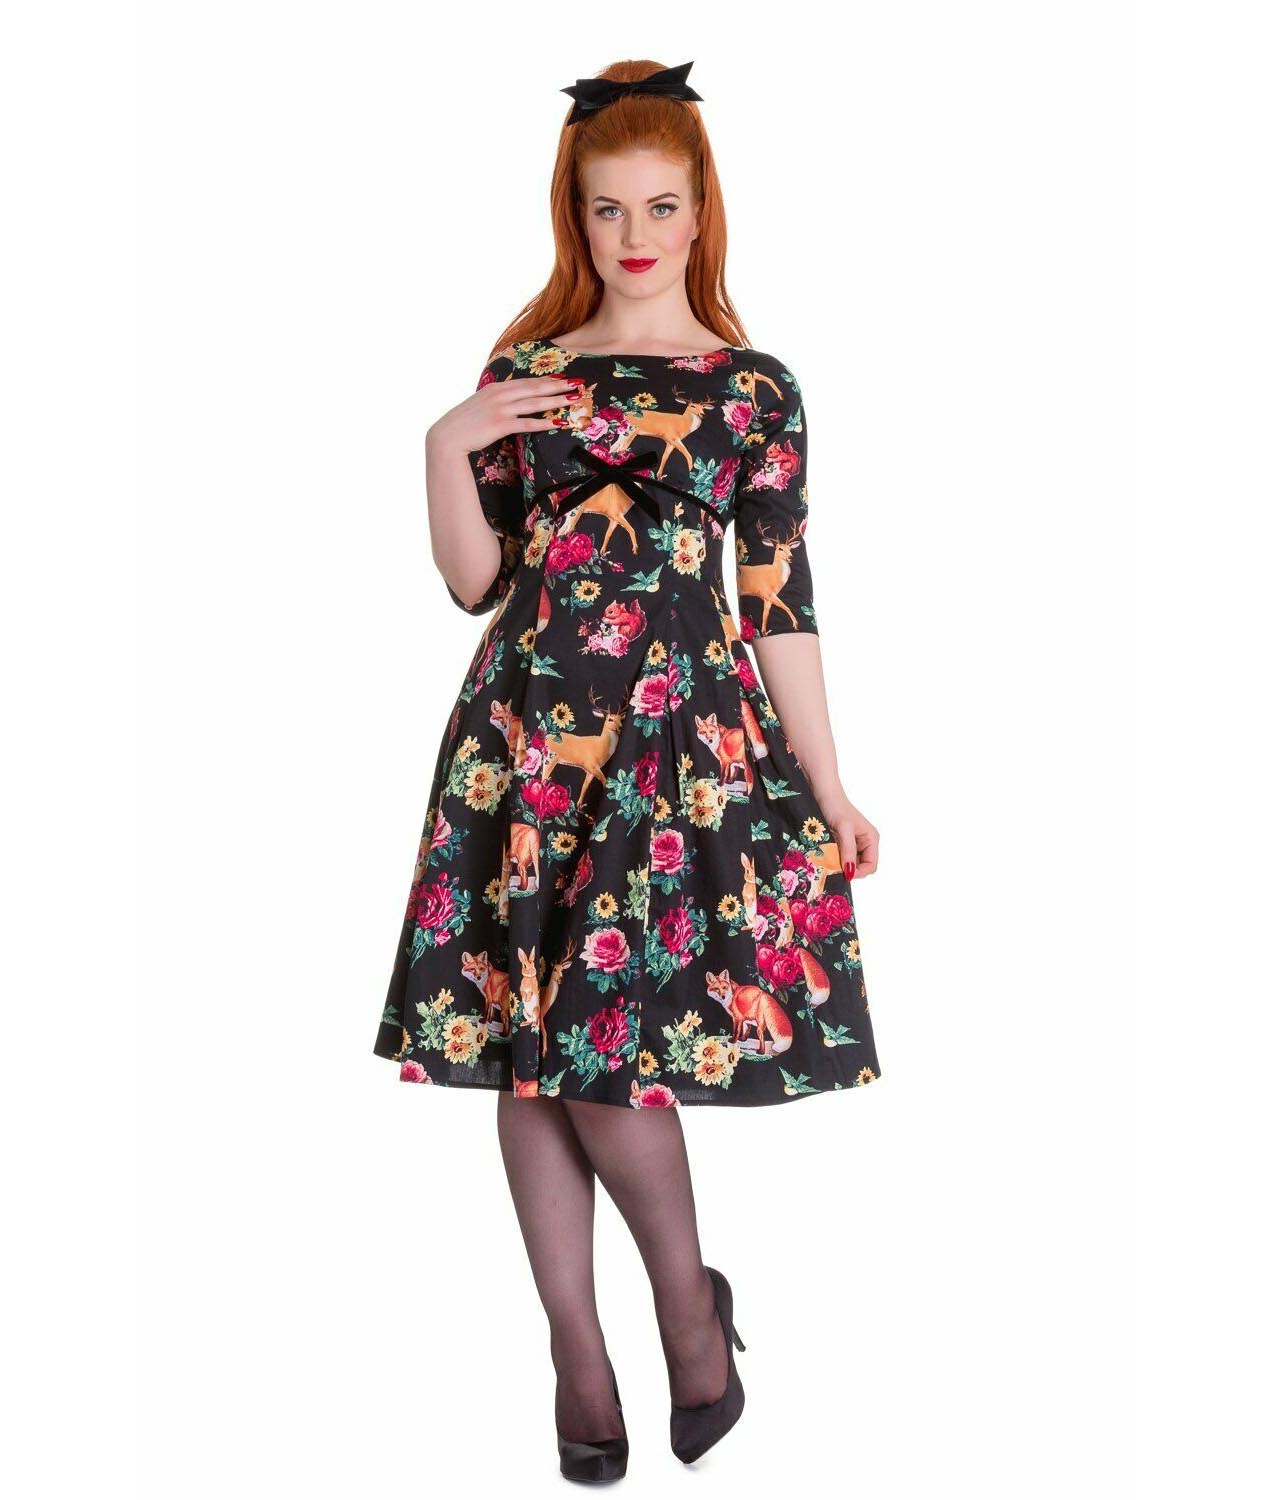 Hell-Bunny-40s-50s-Pin-Up-Vintage-Dress-HERMELINE-Woodland-Fox-All-Sizes thumbnail 7